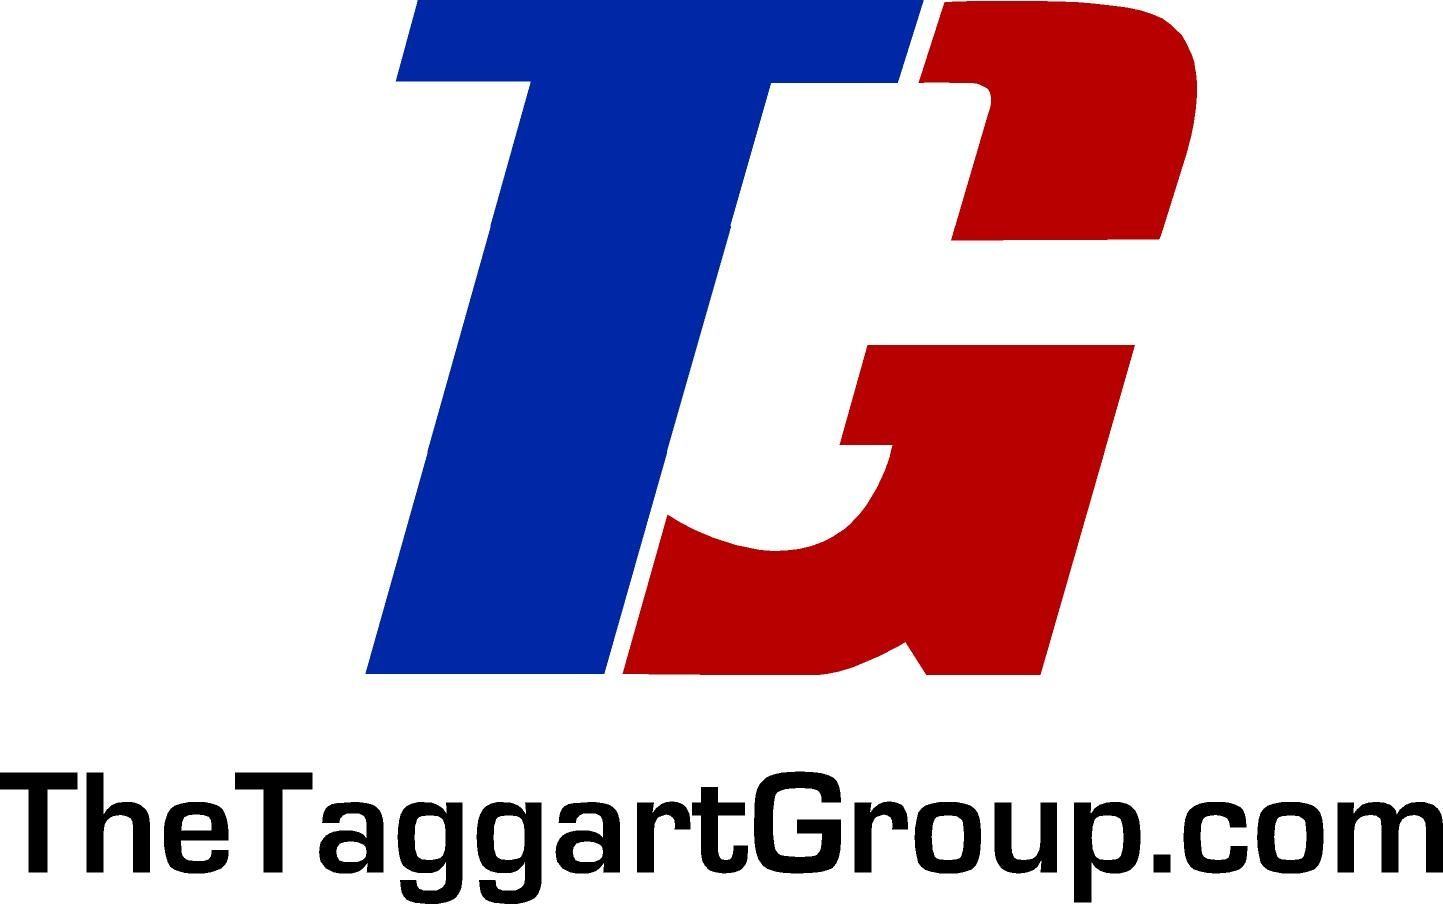 taggart_motor_co-pic-5088272524863569931-1600x1200